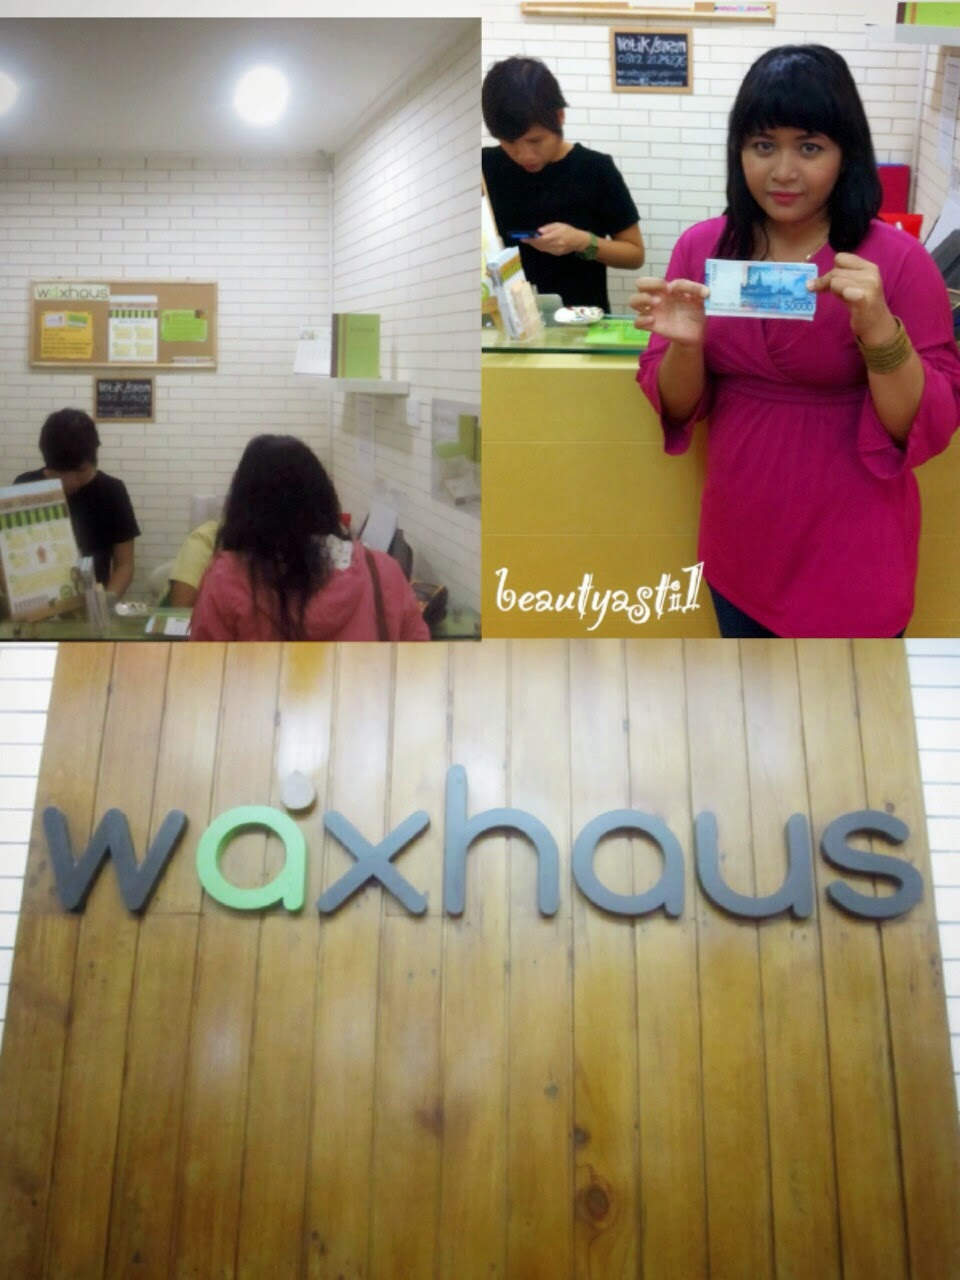 waxhaus-eyebrows-treatment-review.jpg